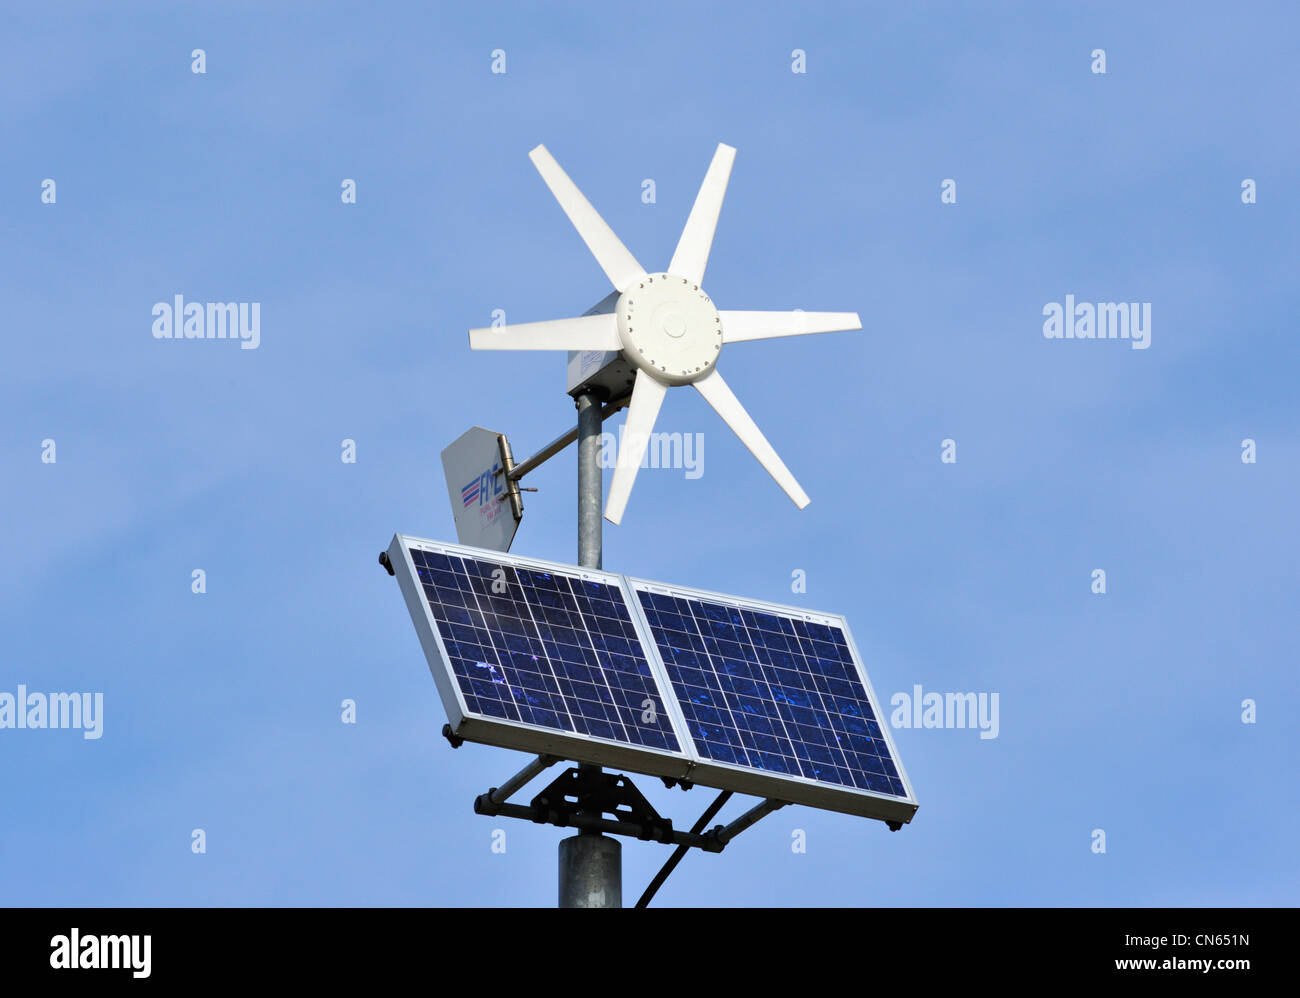 solar-panel-and-wind-turbine-powering-a-road-sign-kirkstone-pass-lake-CN651N.jpg